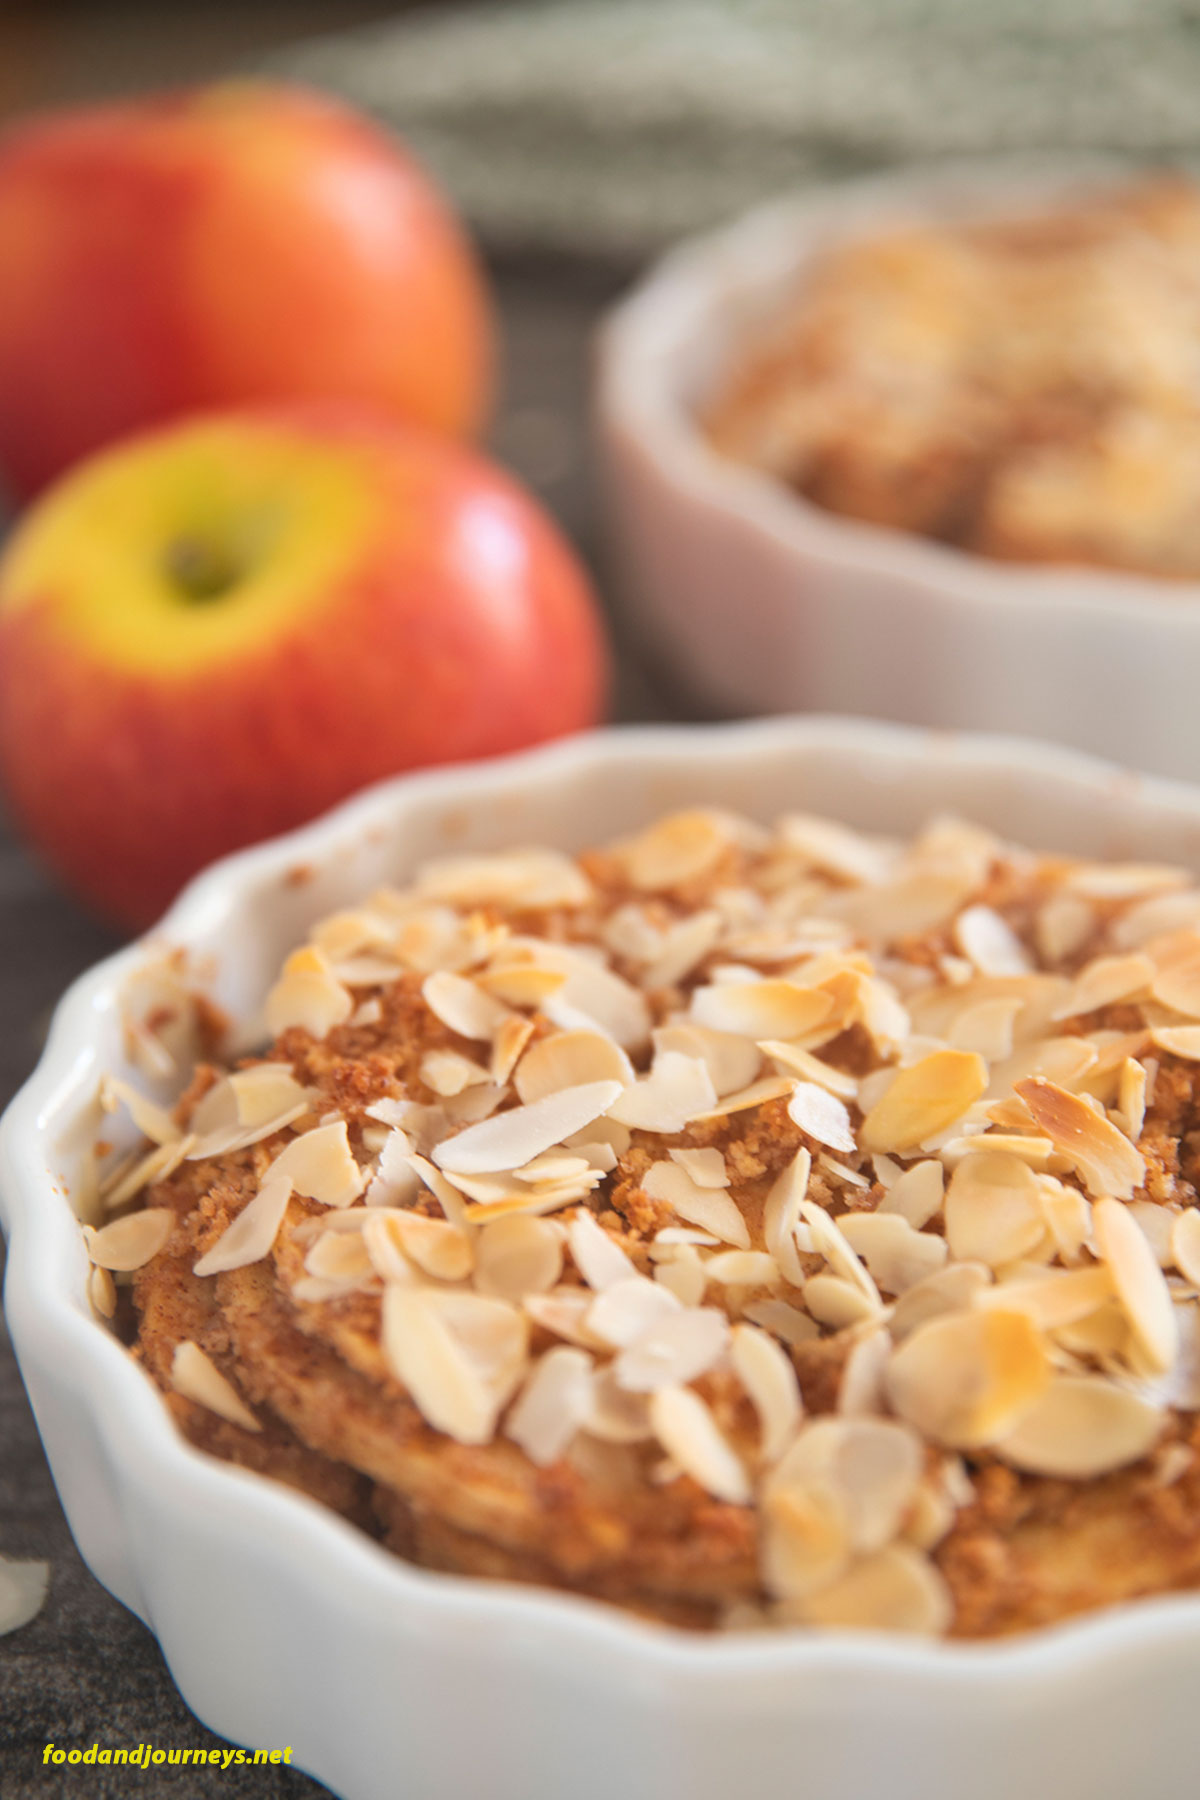 A closer shot on a small pan of Swedish Apple Crumble highlighting the crunchy slices of almonds on top